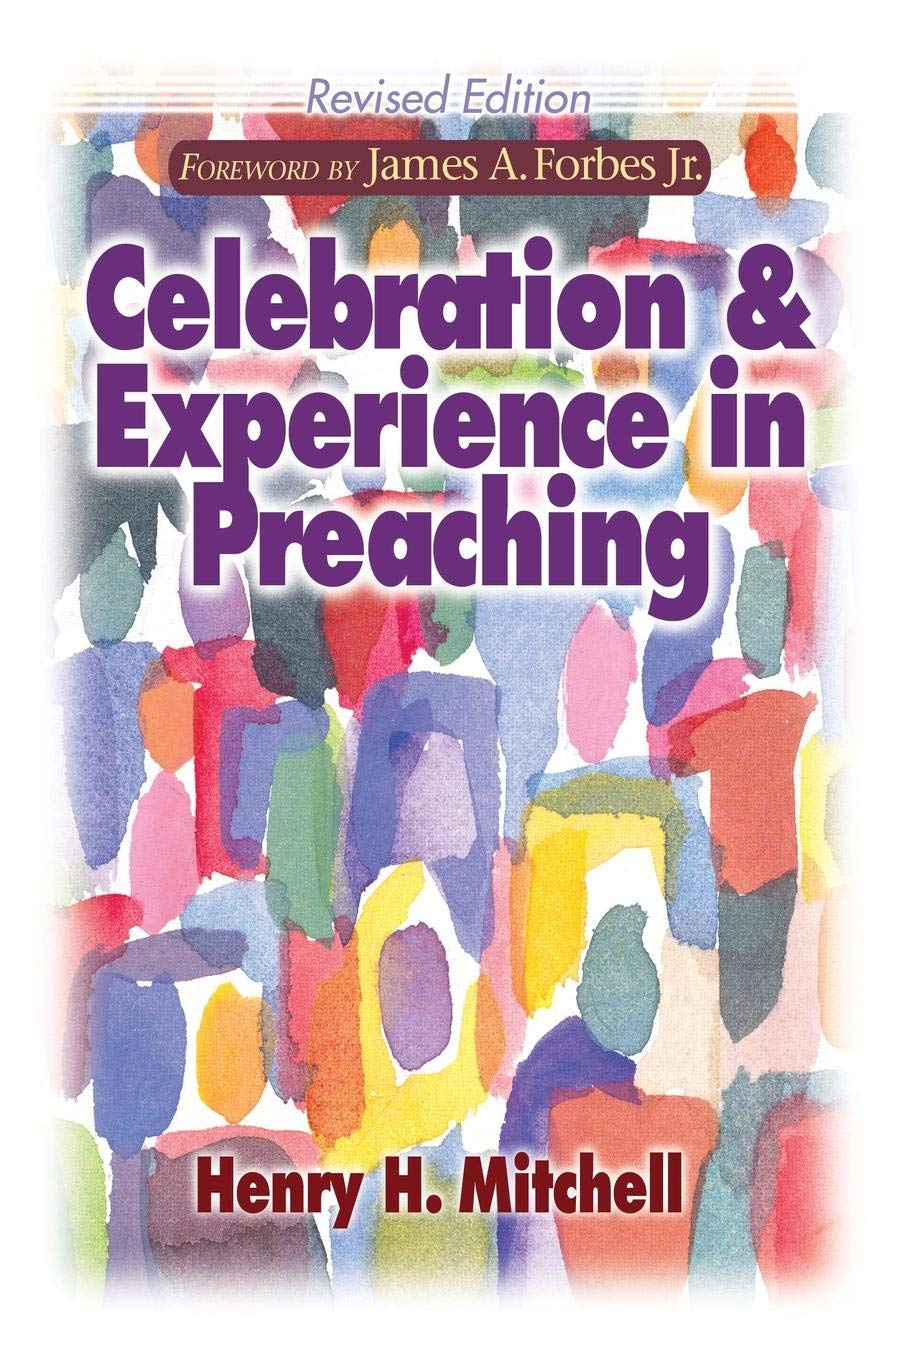 Celebration & Experience in Preaching: Revised Edition: Henry H. Mitchell:  9780687649198: Amazon.com: Books